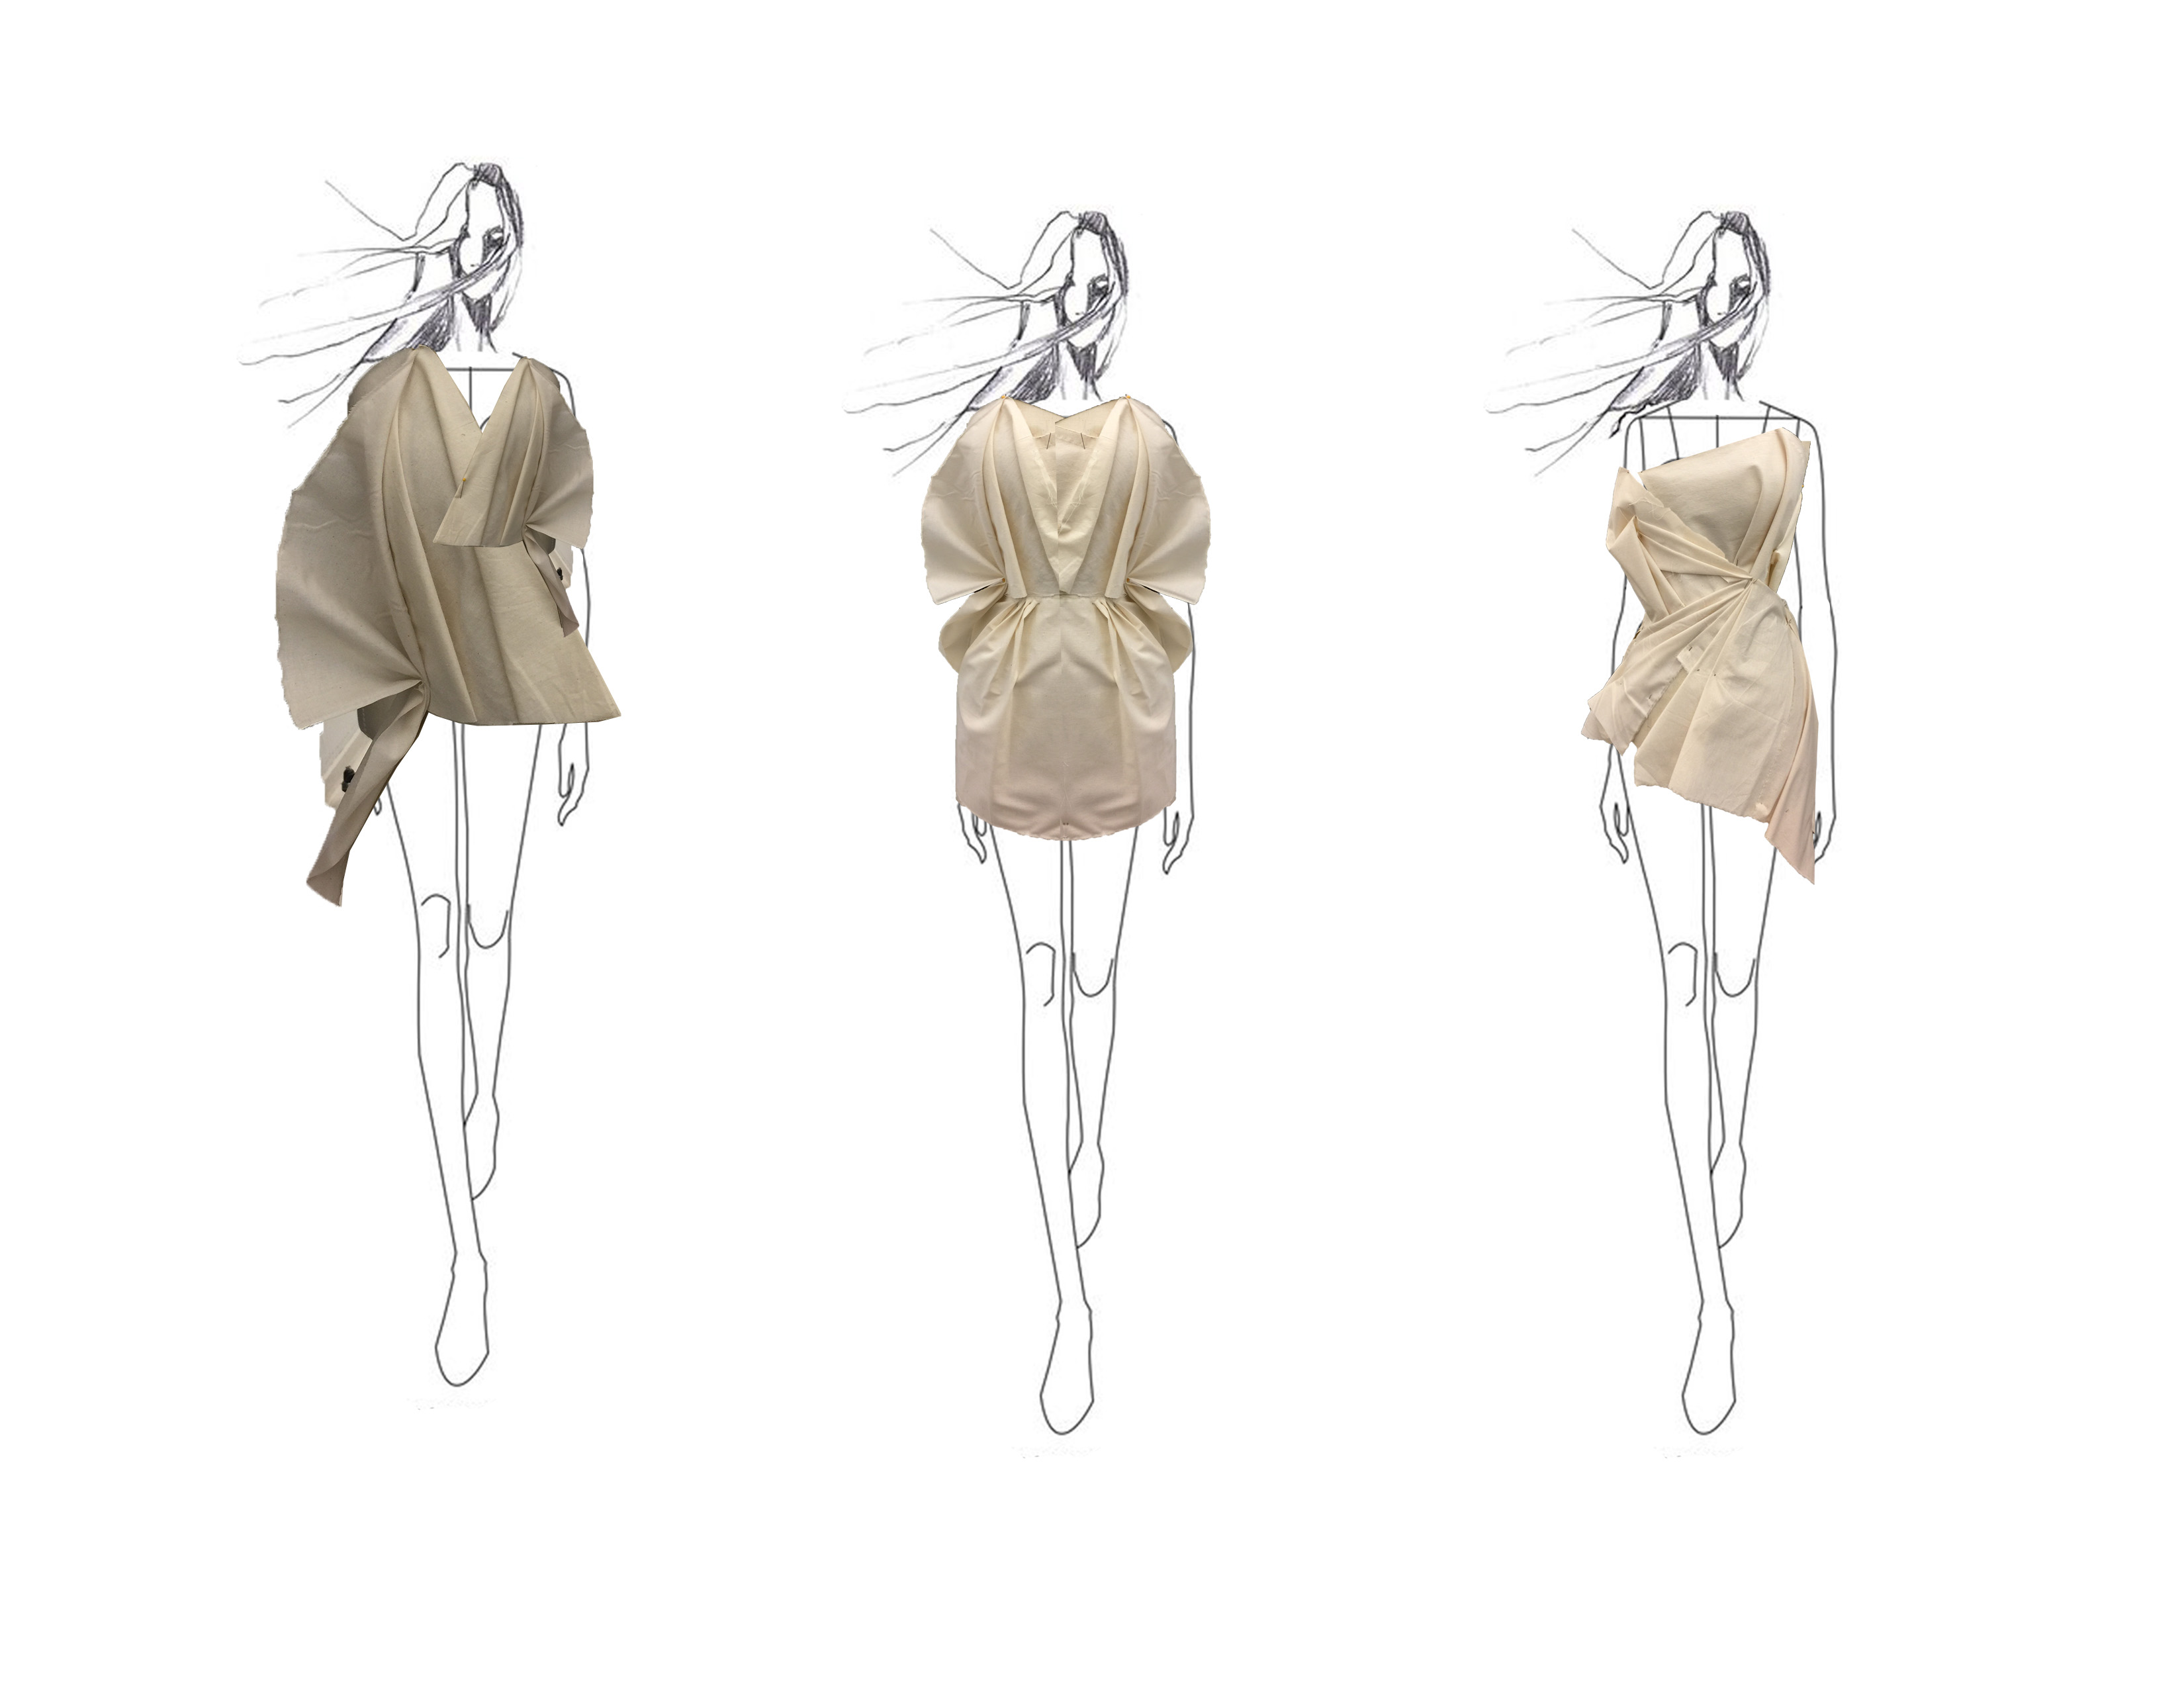 CTS2: Class Speed Draping and Sketches